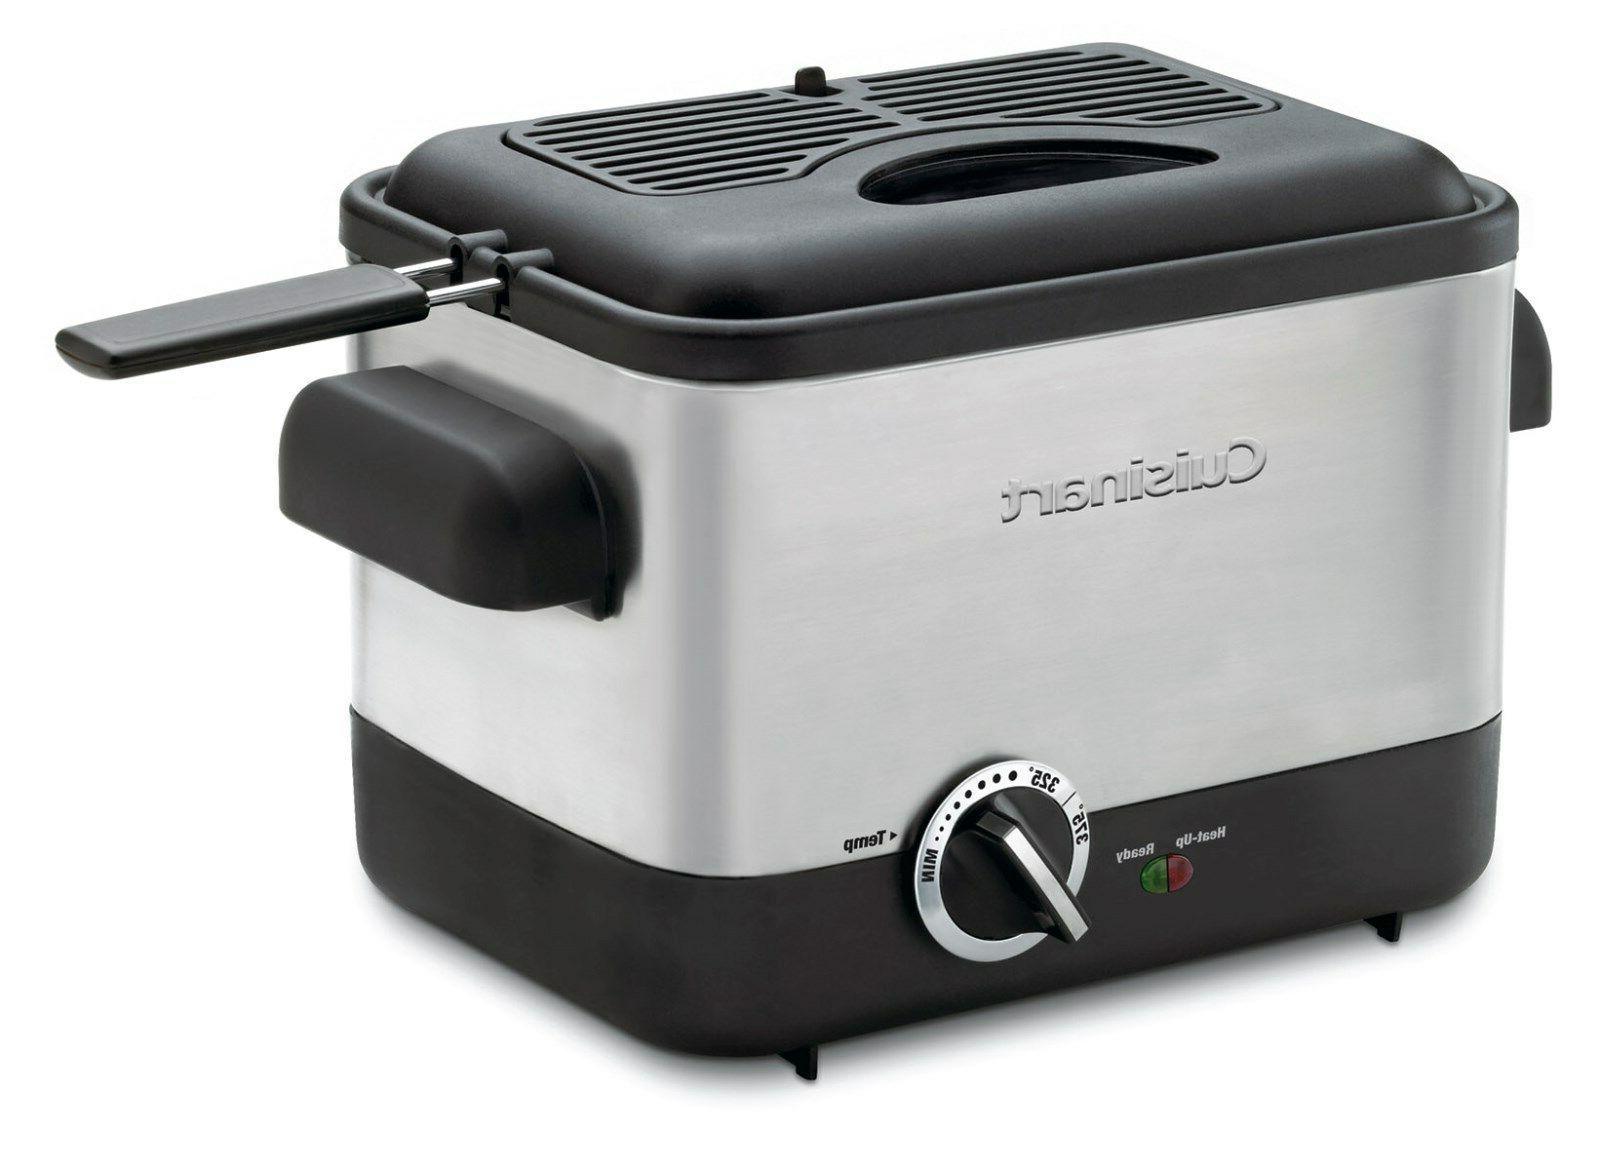 new cdf 100 compact deep fryer